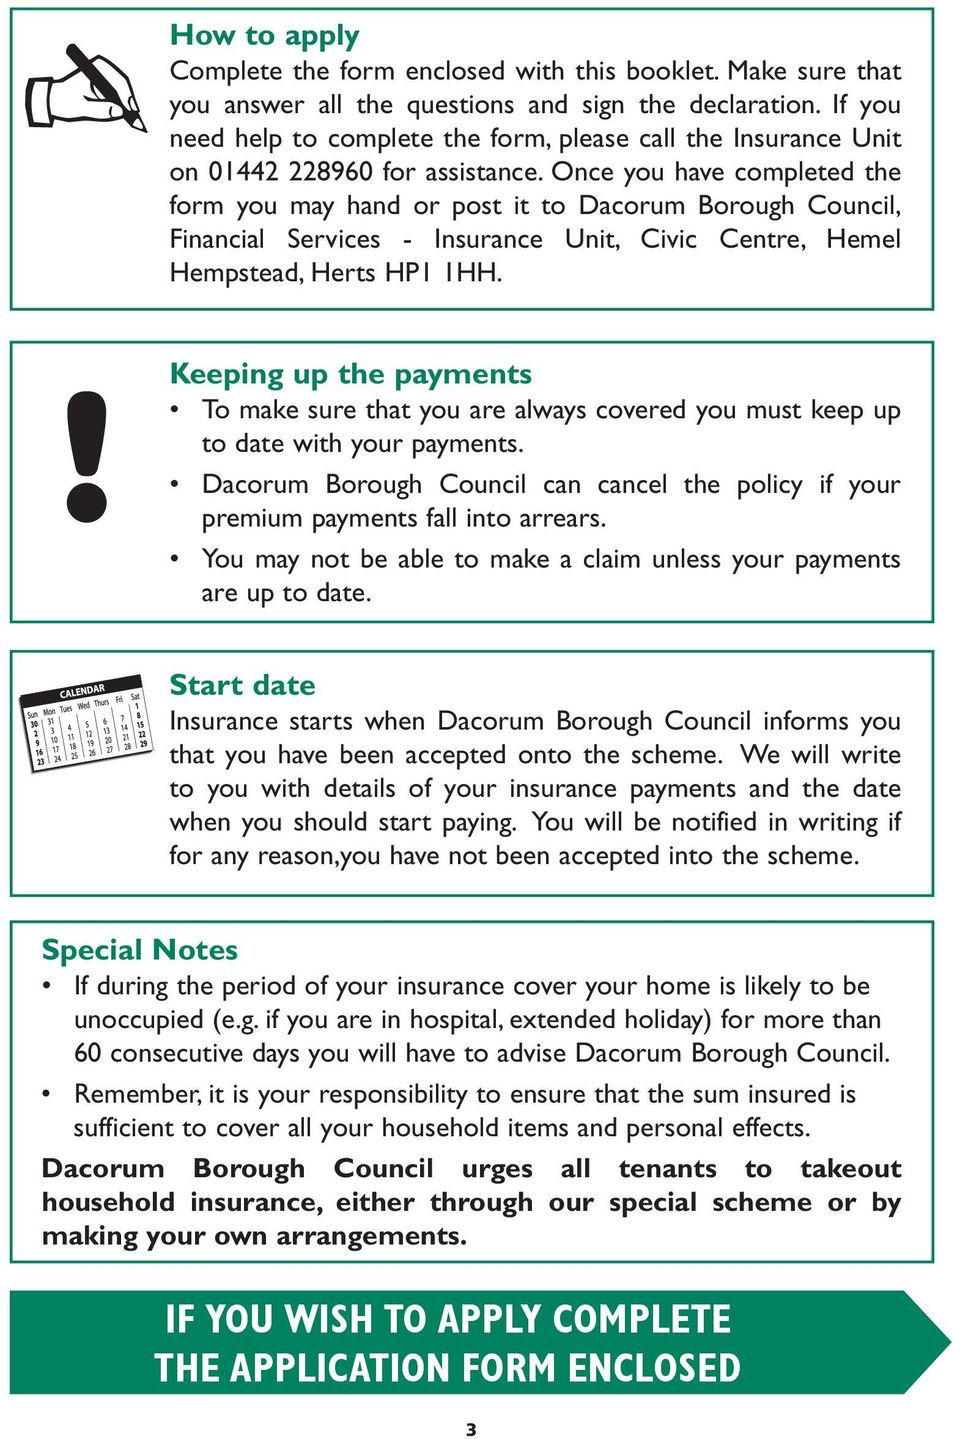 Once you have completed the form you may hand or post it to Dacorum Borough Council, Financial Services - Insurance Unit, Civic Centre, Hemel Hempstead, Herts HP1 1HH.